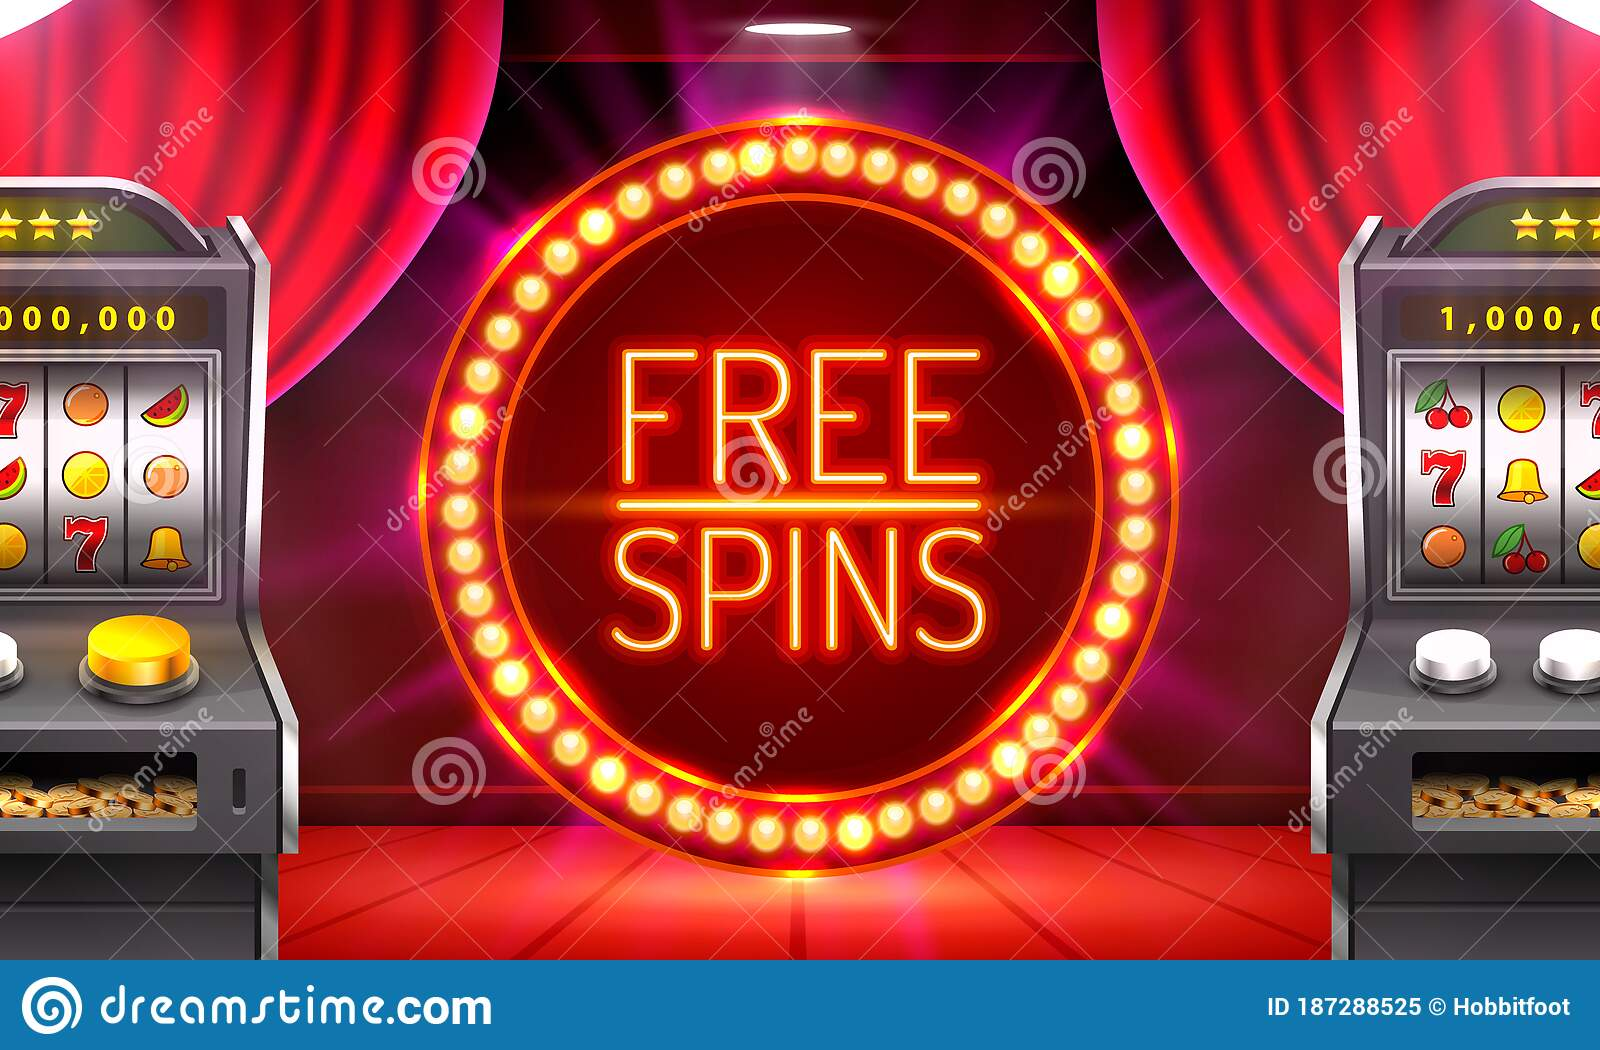 Casino Free Spins 777 Slot Sign Machine Vector Stock Vector Illustration Of Lucky Coin 187288525